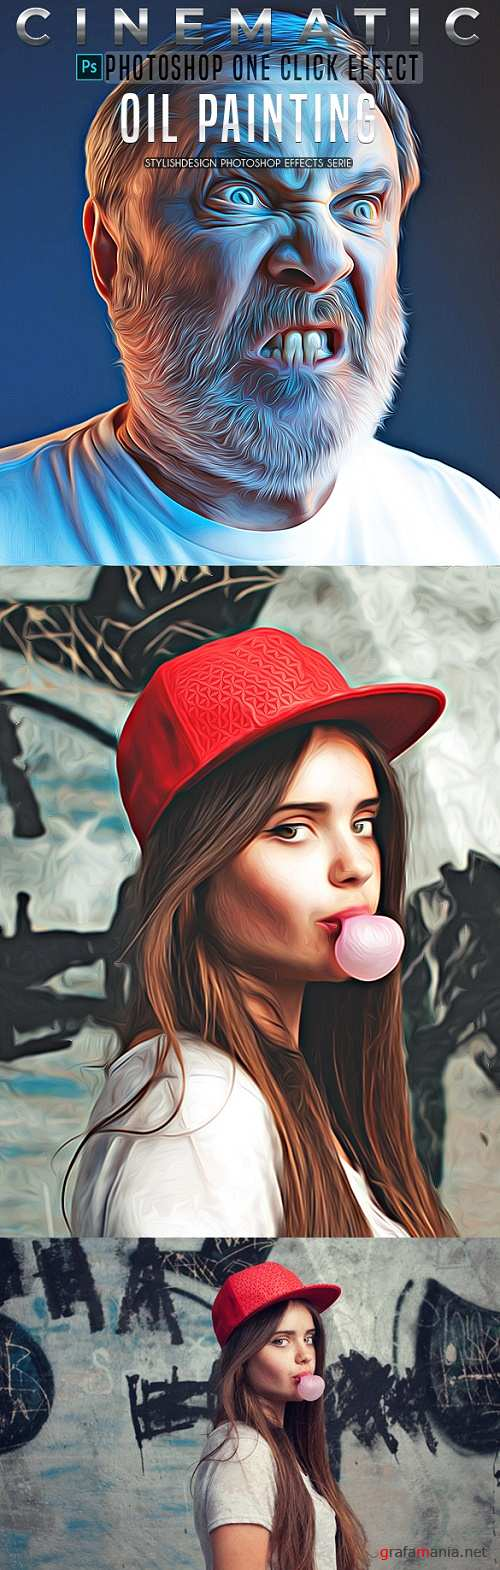 Oil Painting Photoshop Actions 22575133